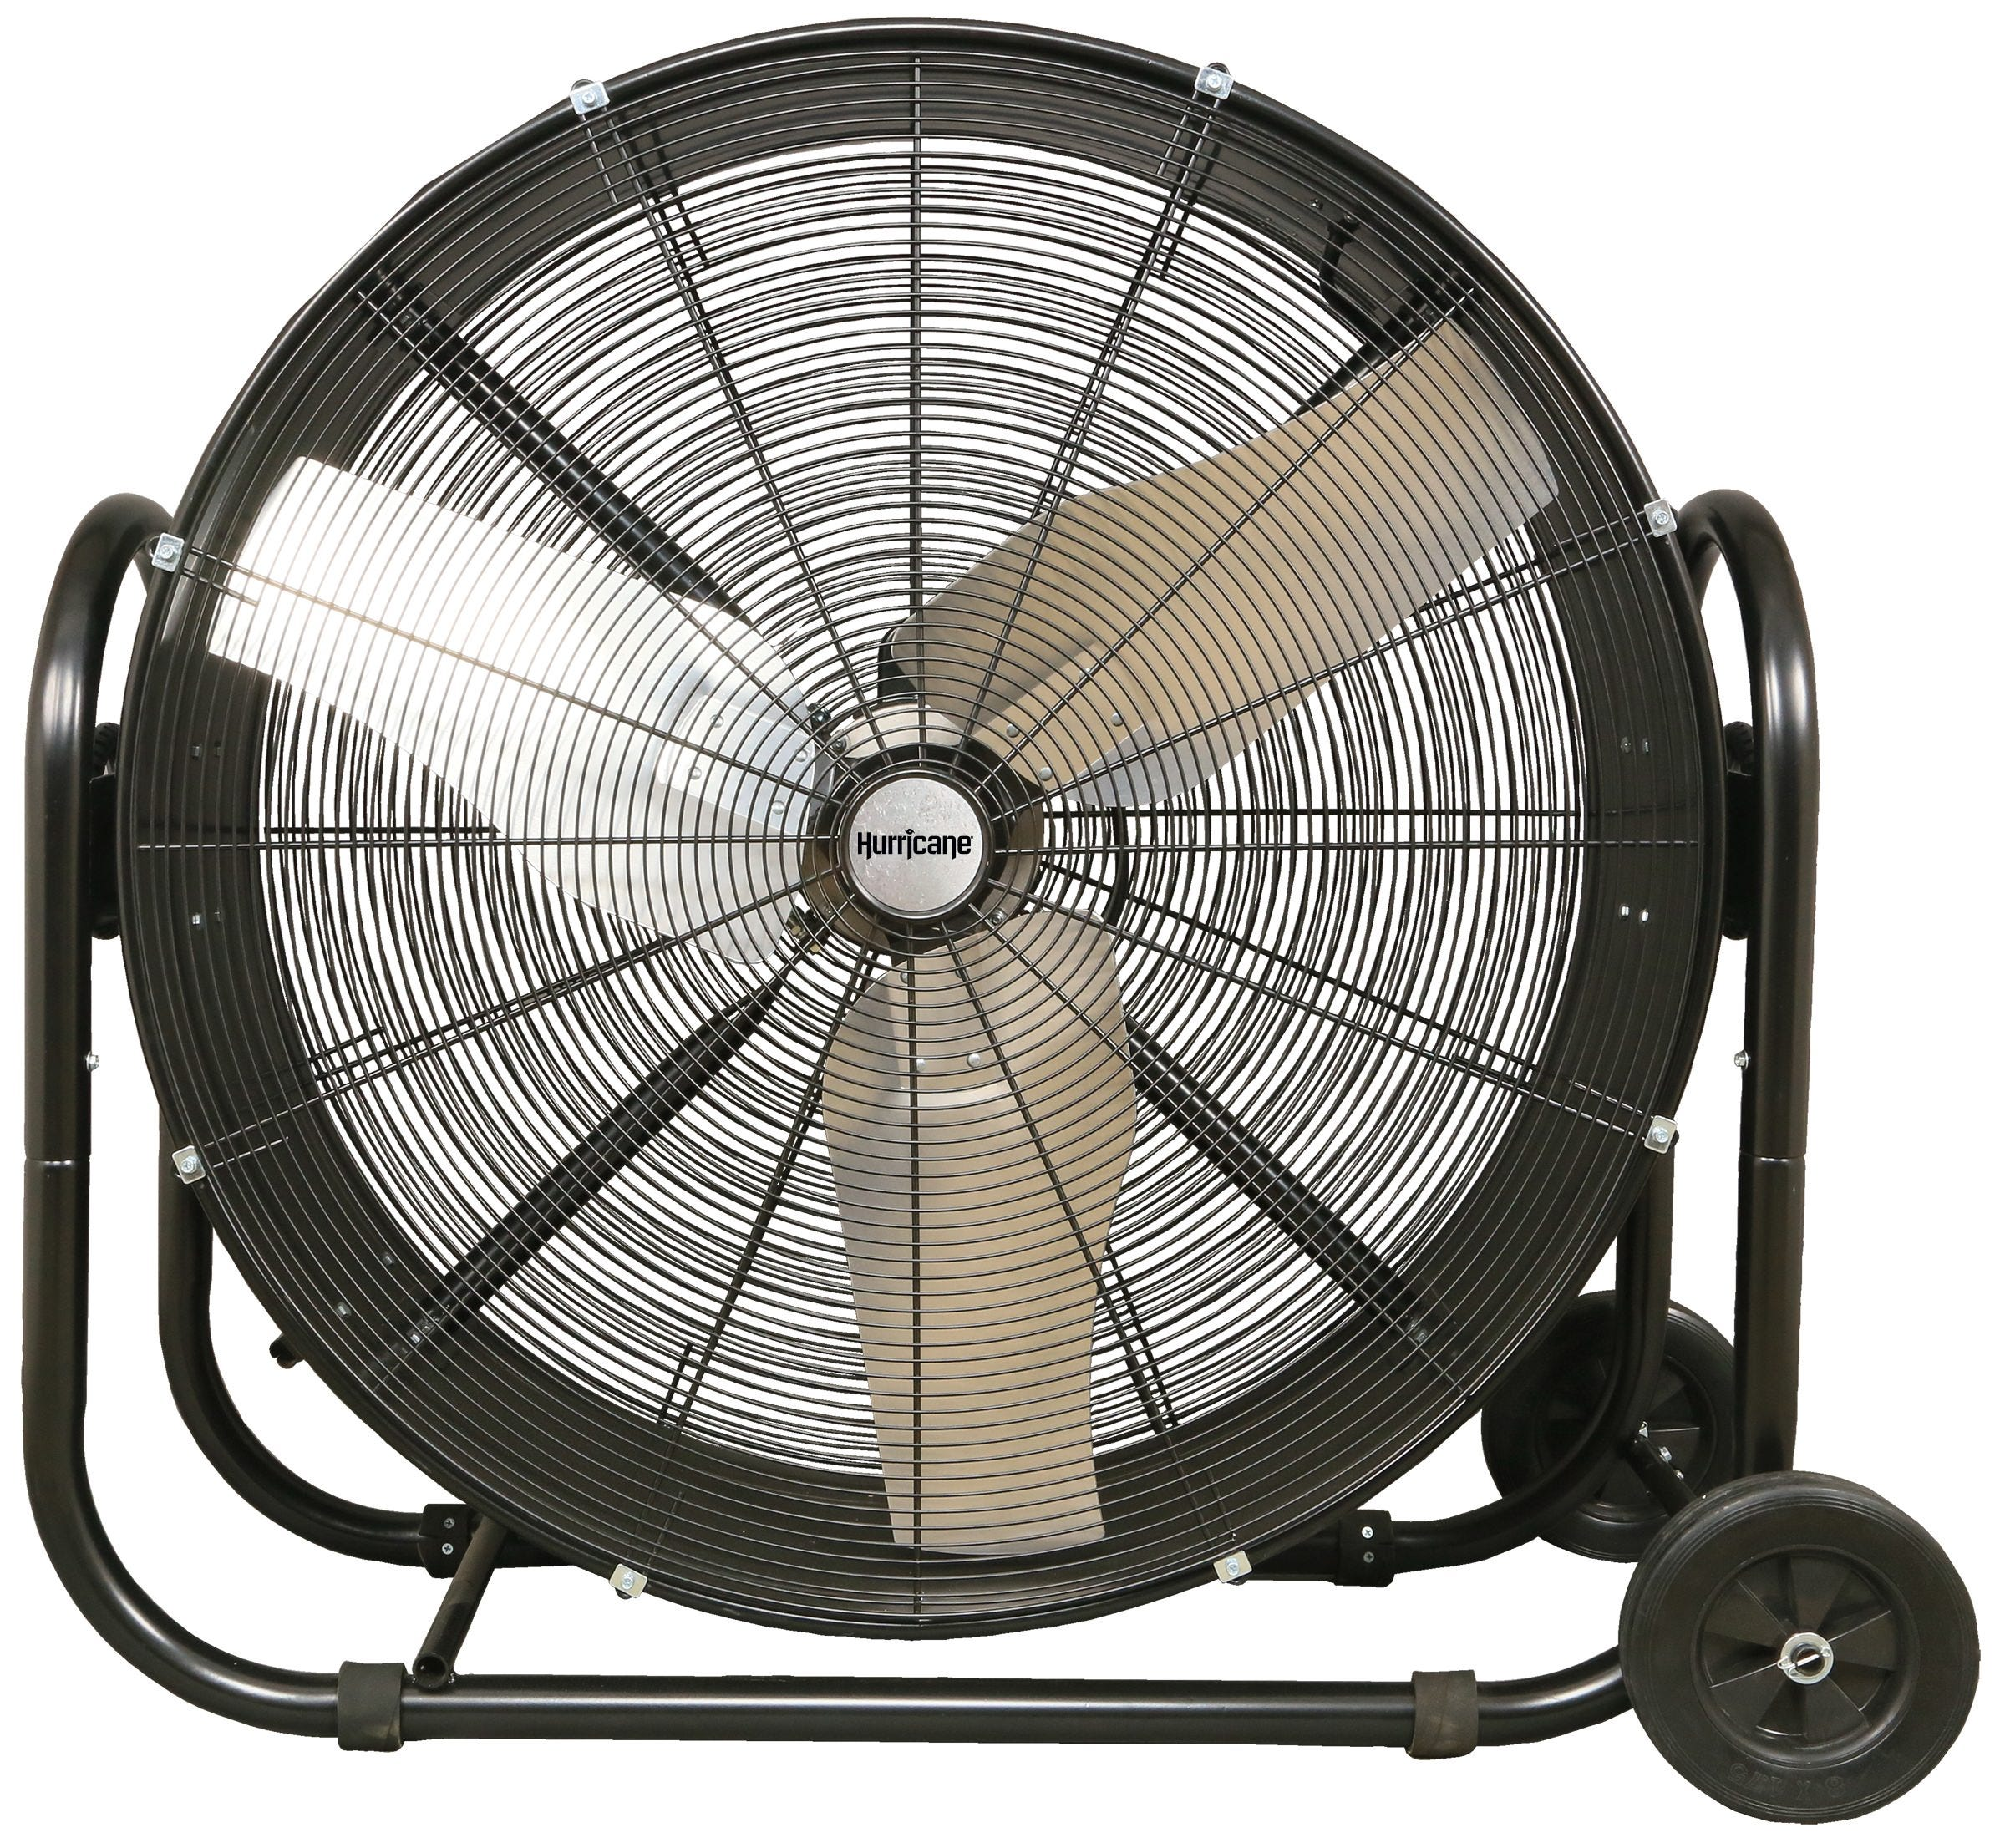 Heavy Duty Fan >> Hurricane Pro Heavy Duty Adjustable Tilt Drum Fan 36 In Direct